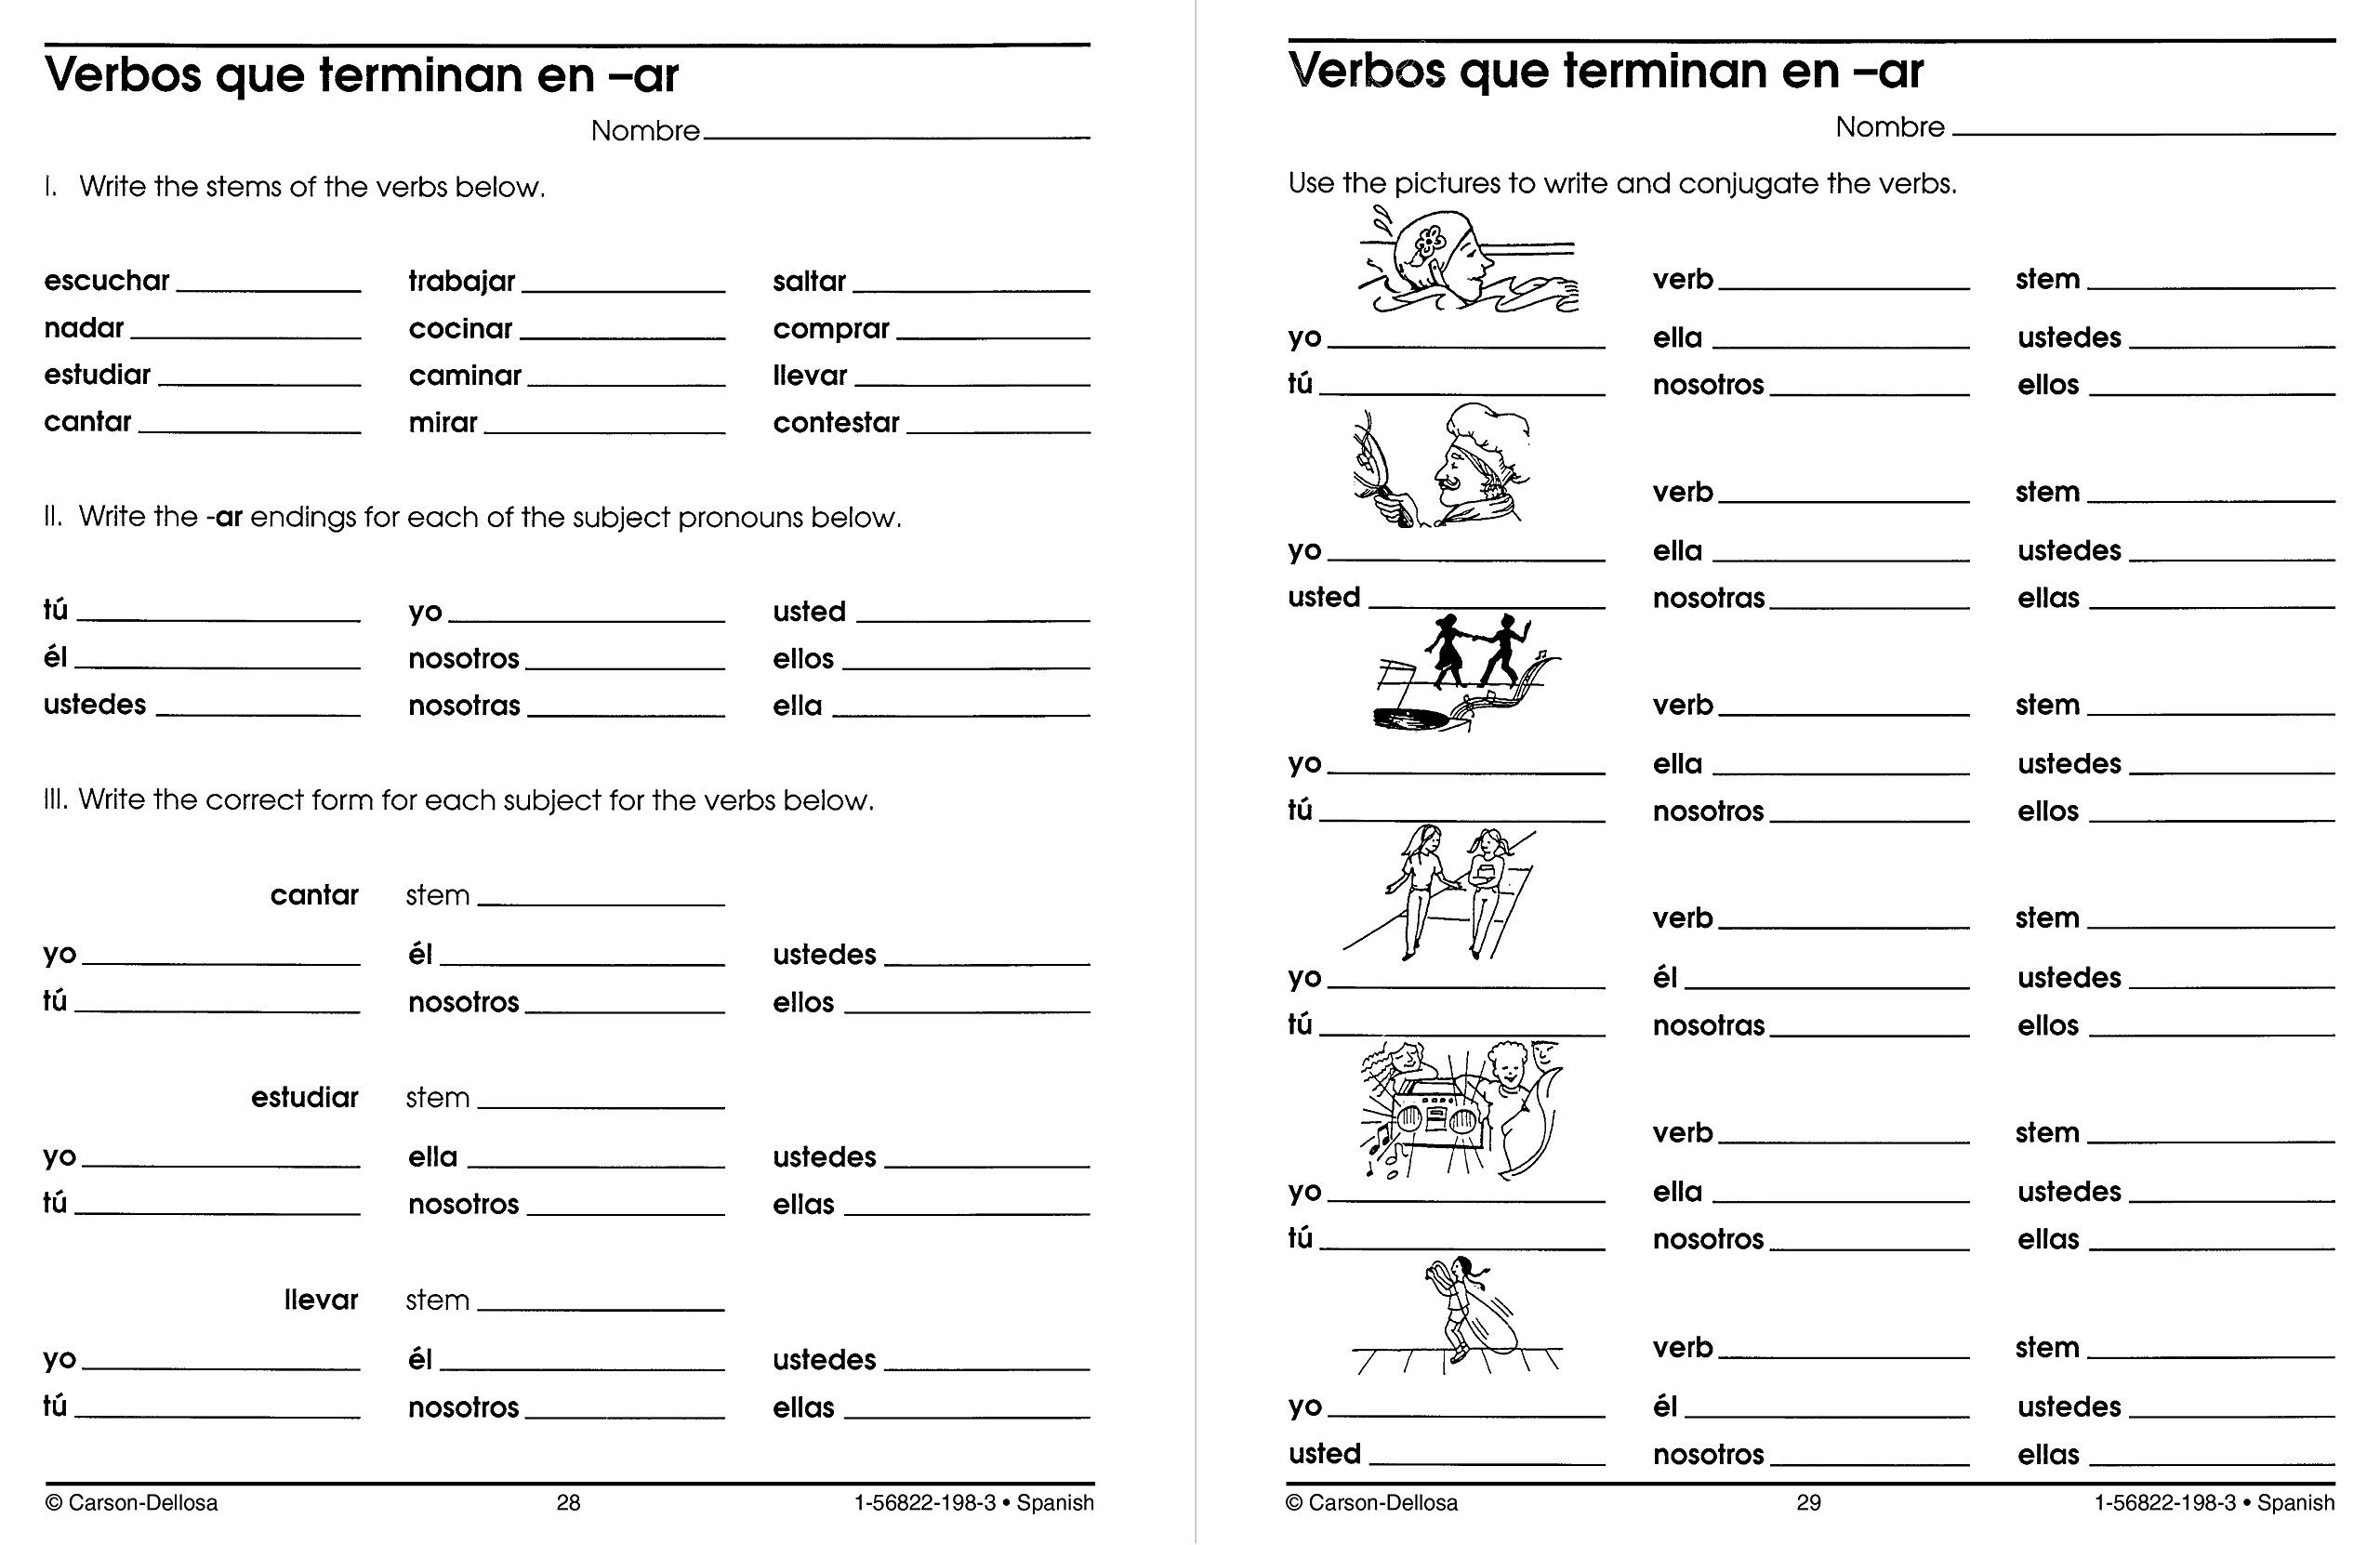 7th Grade Spanish Worksheets Math Board Games Ks1 Free Trolls Coloring Pages Sequence